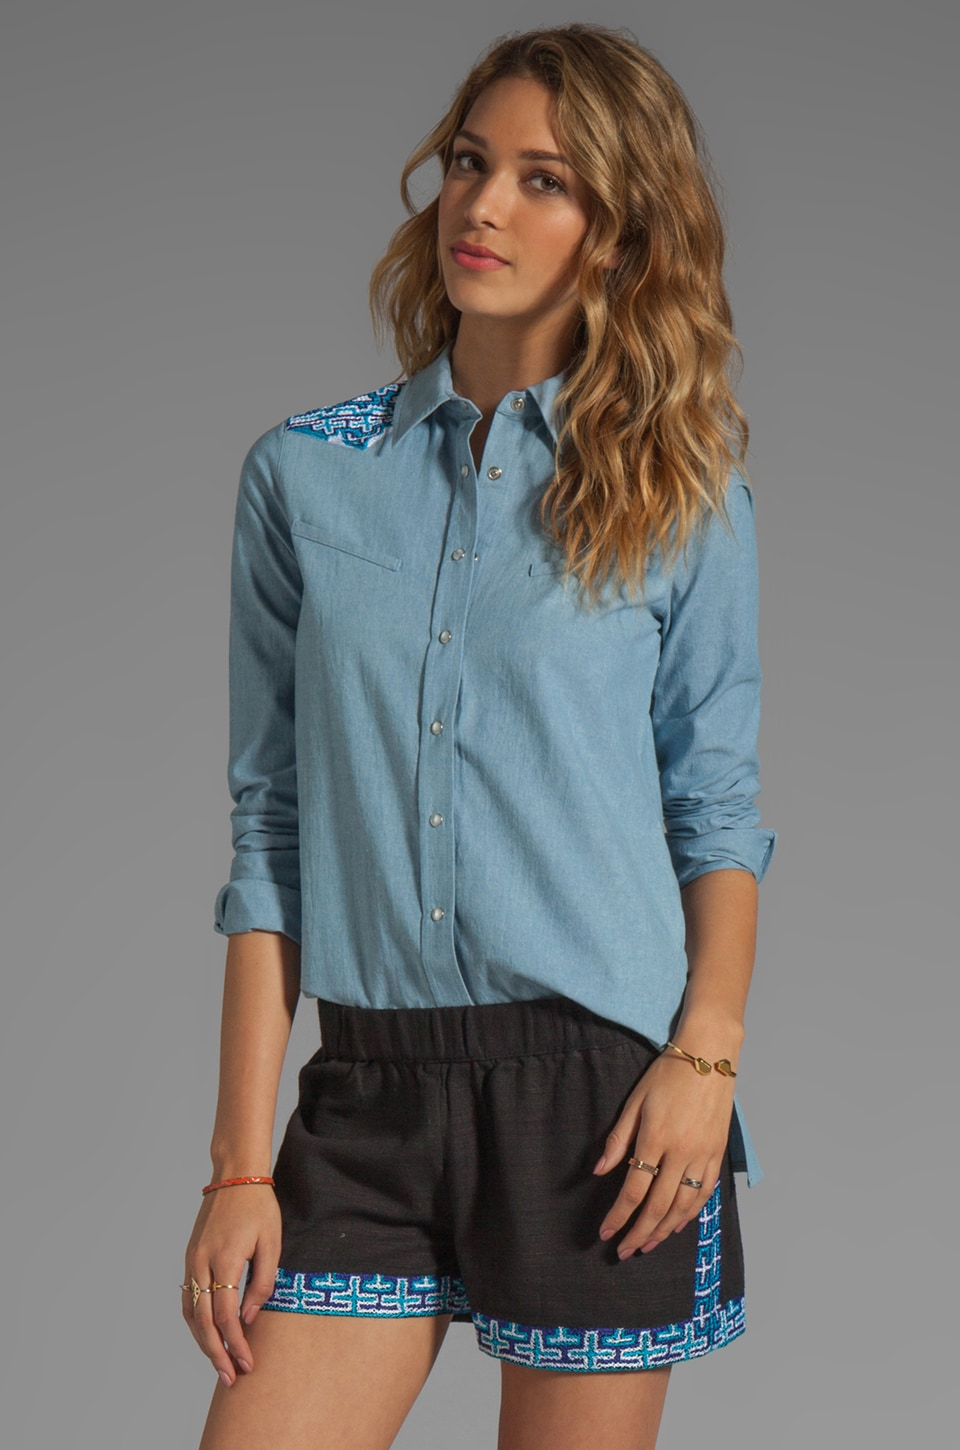 Gryphon Western Shirt in Blue